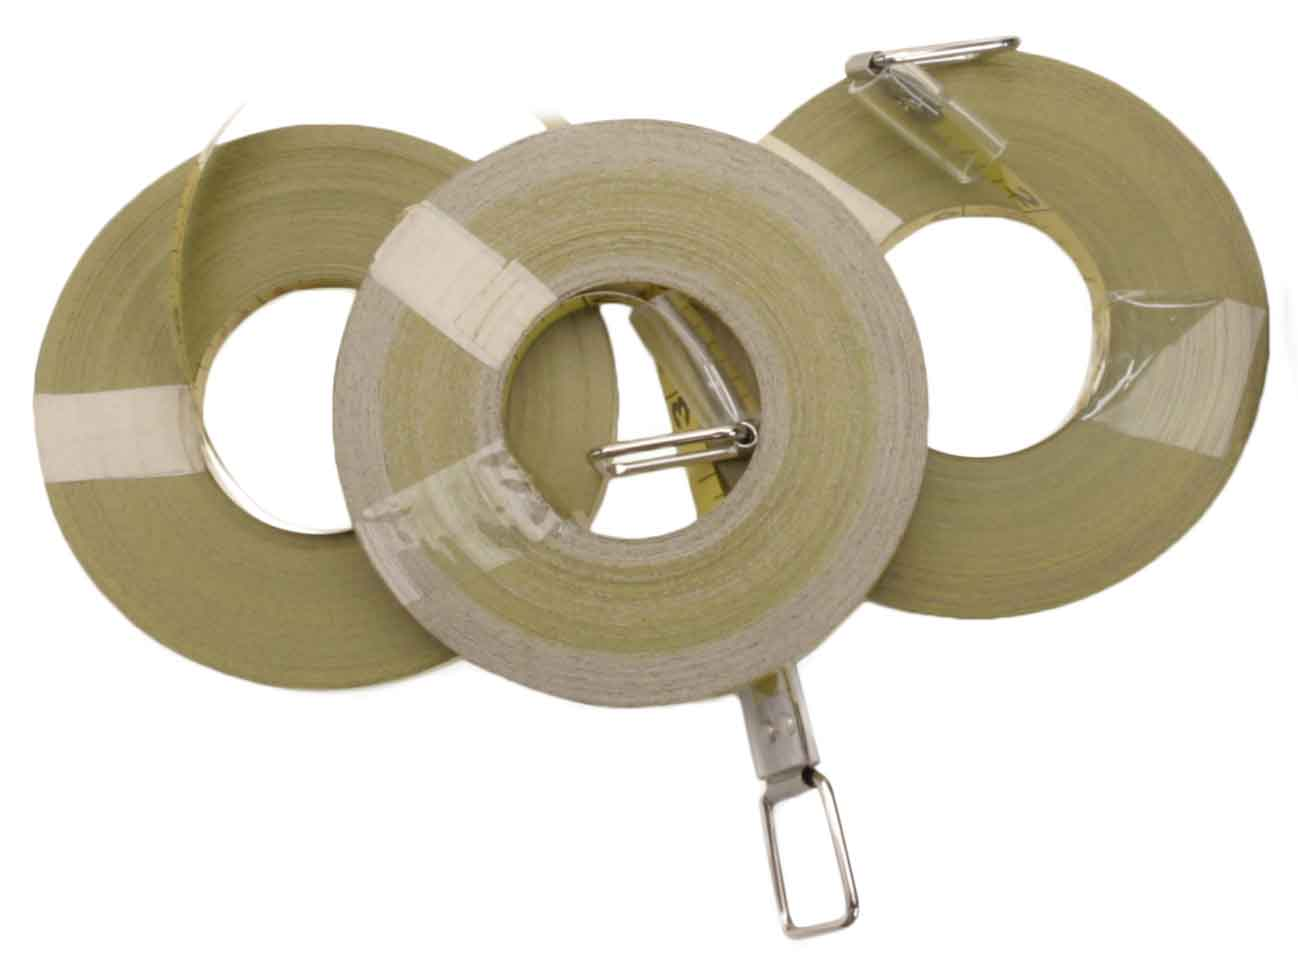 TAP 985C - 09) Spencer 985C - 75ft Combination Tape Refill